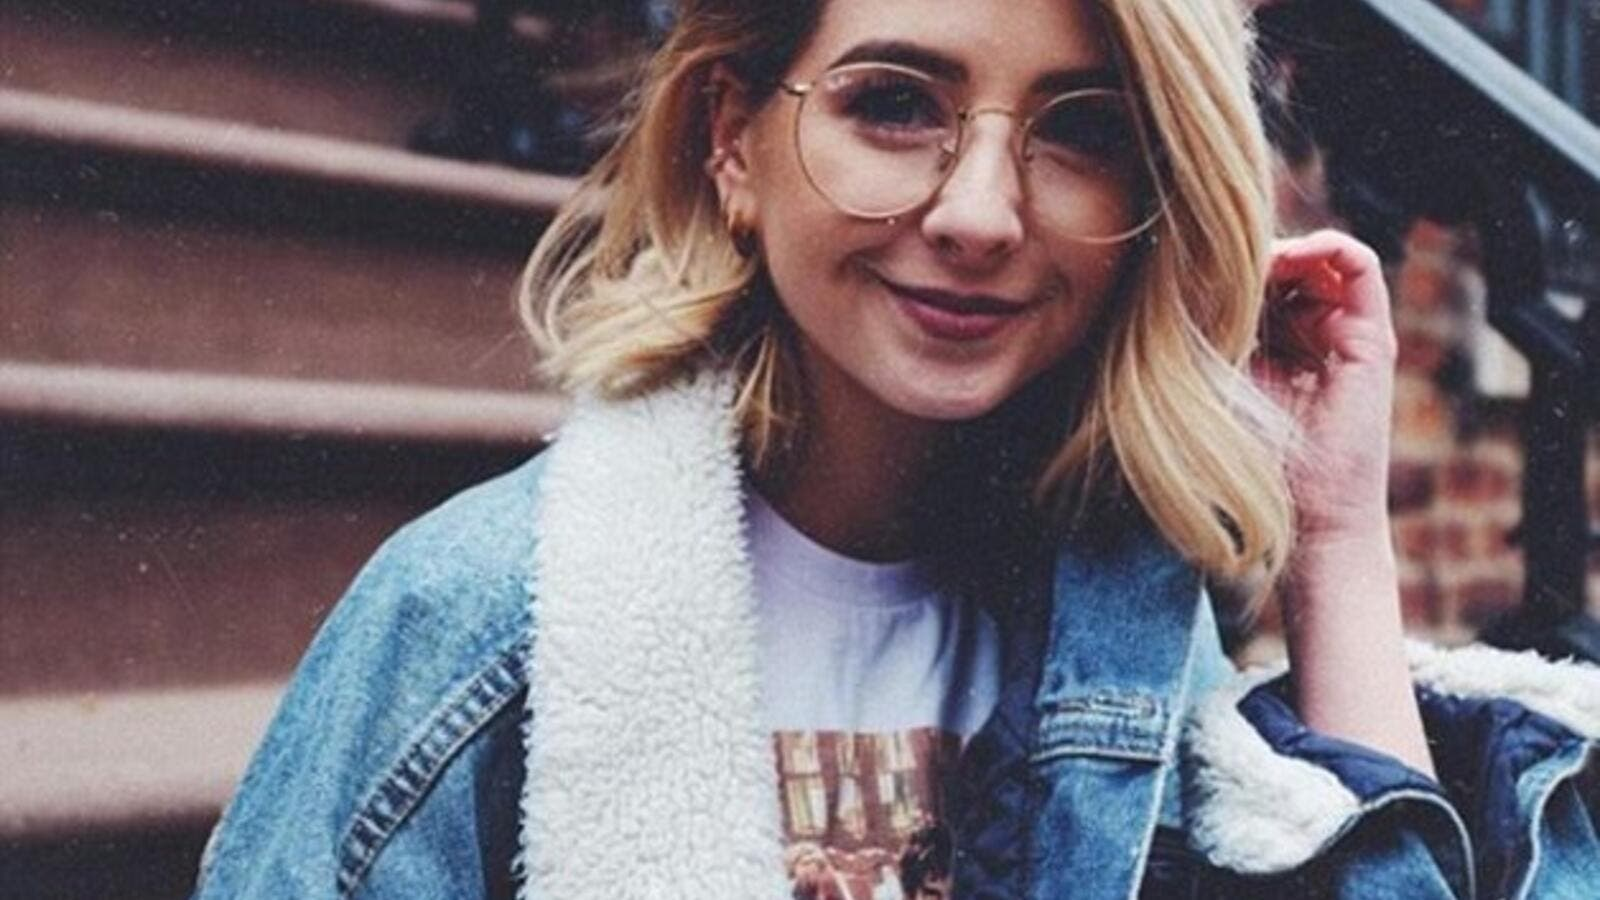 What happened to zoella